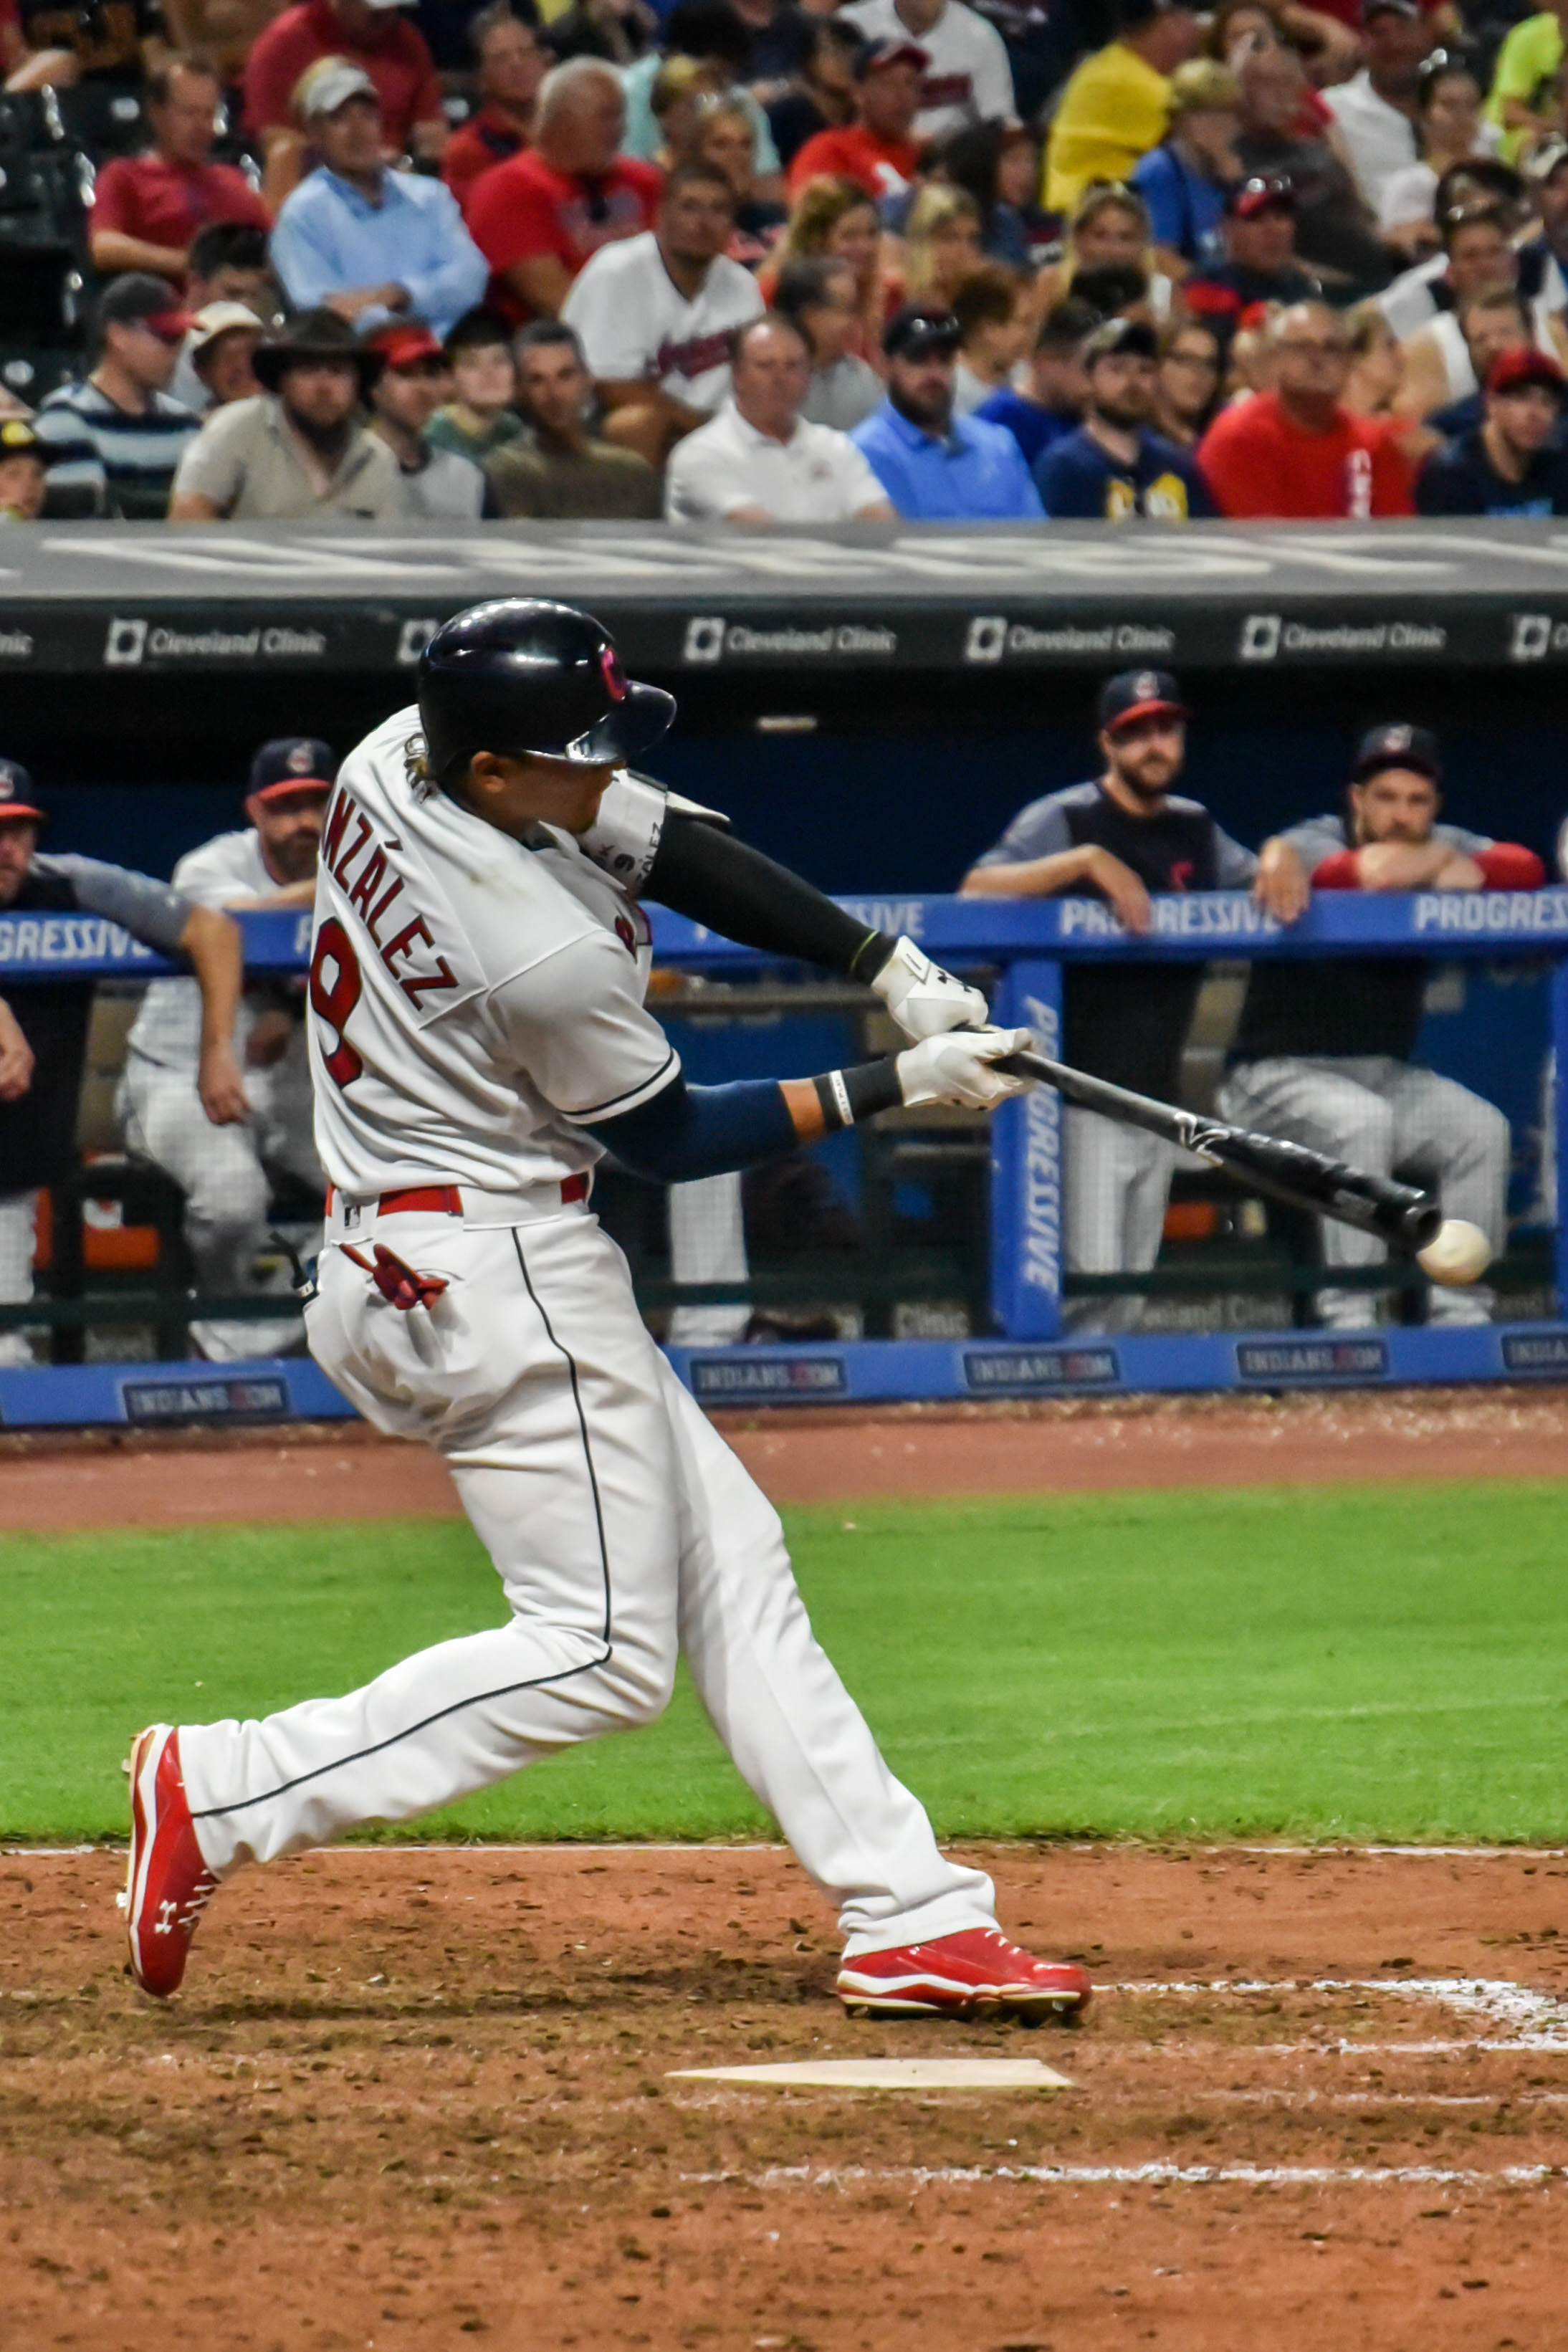 Erik Gonzalez sends one down the third baseline during Clevelands win on Friday night against the Blue Jays.